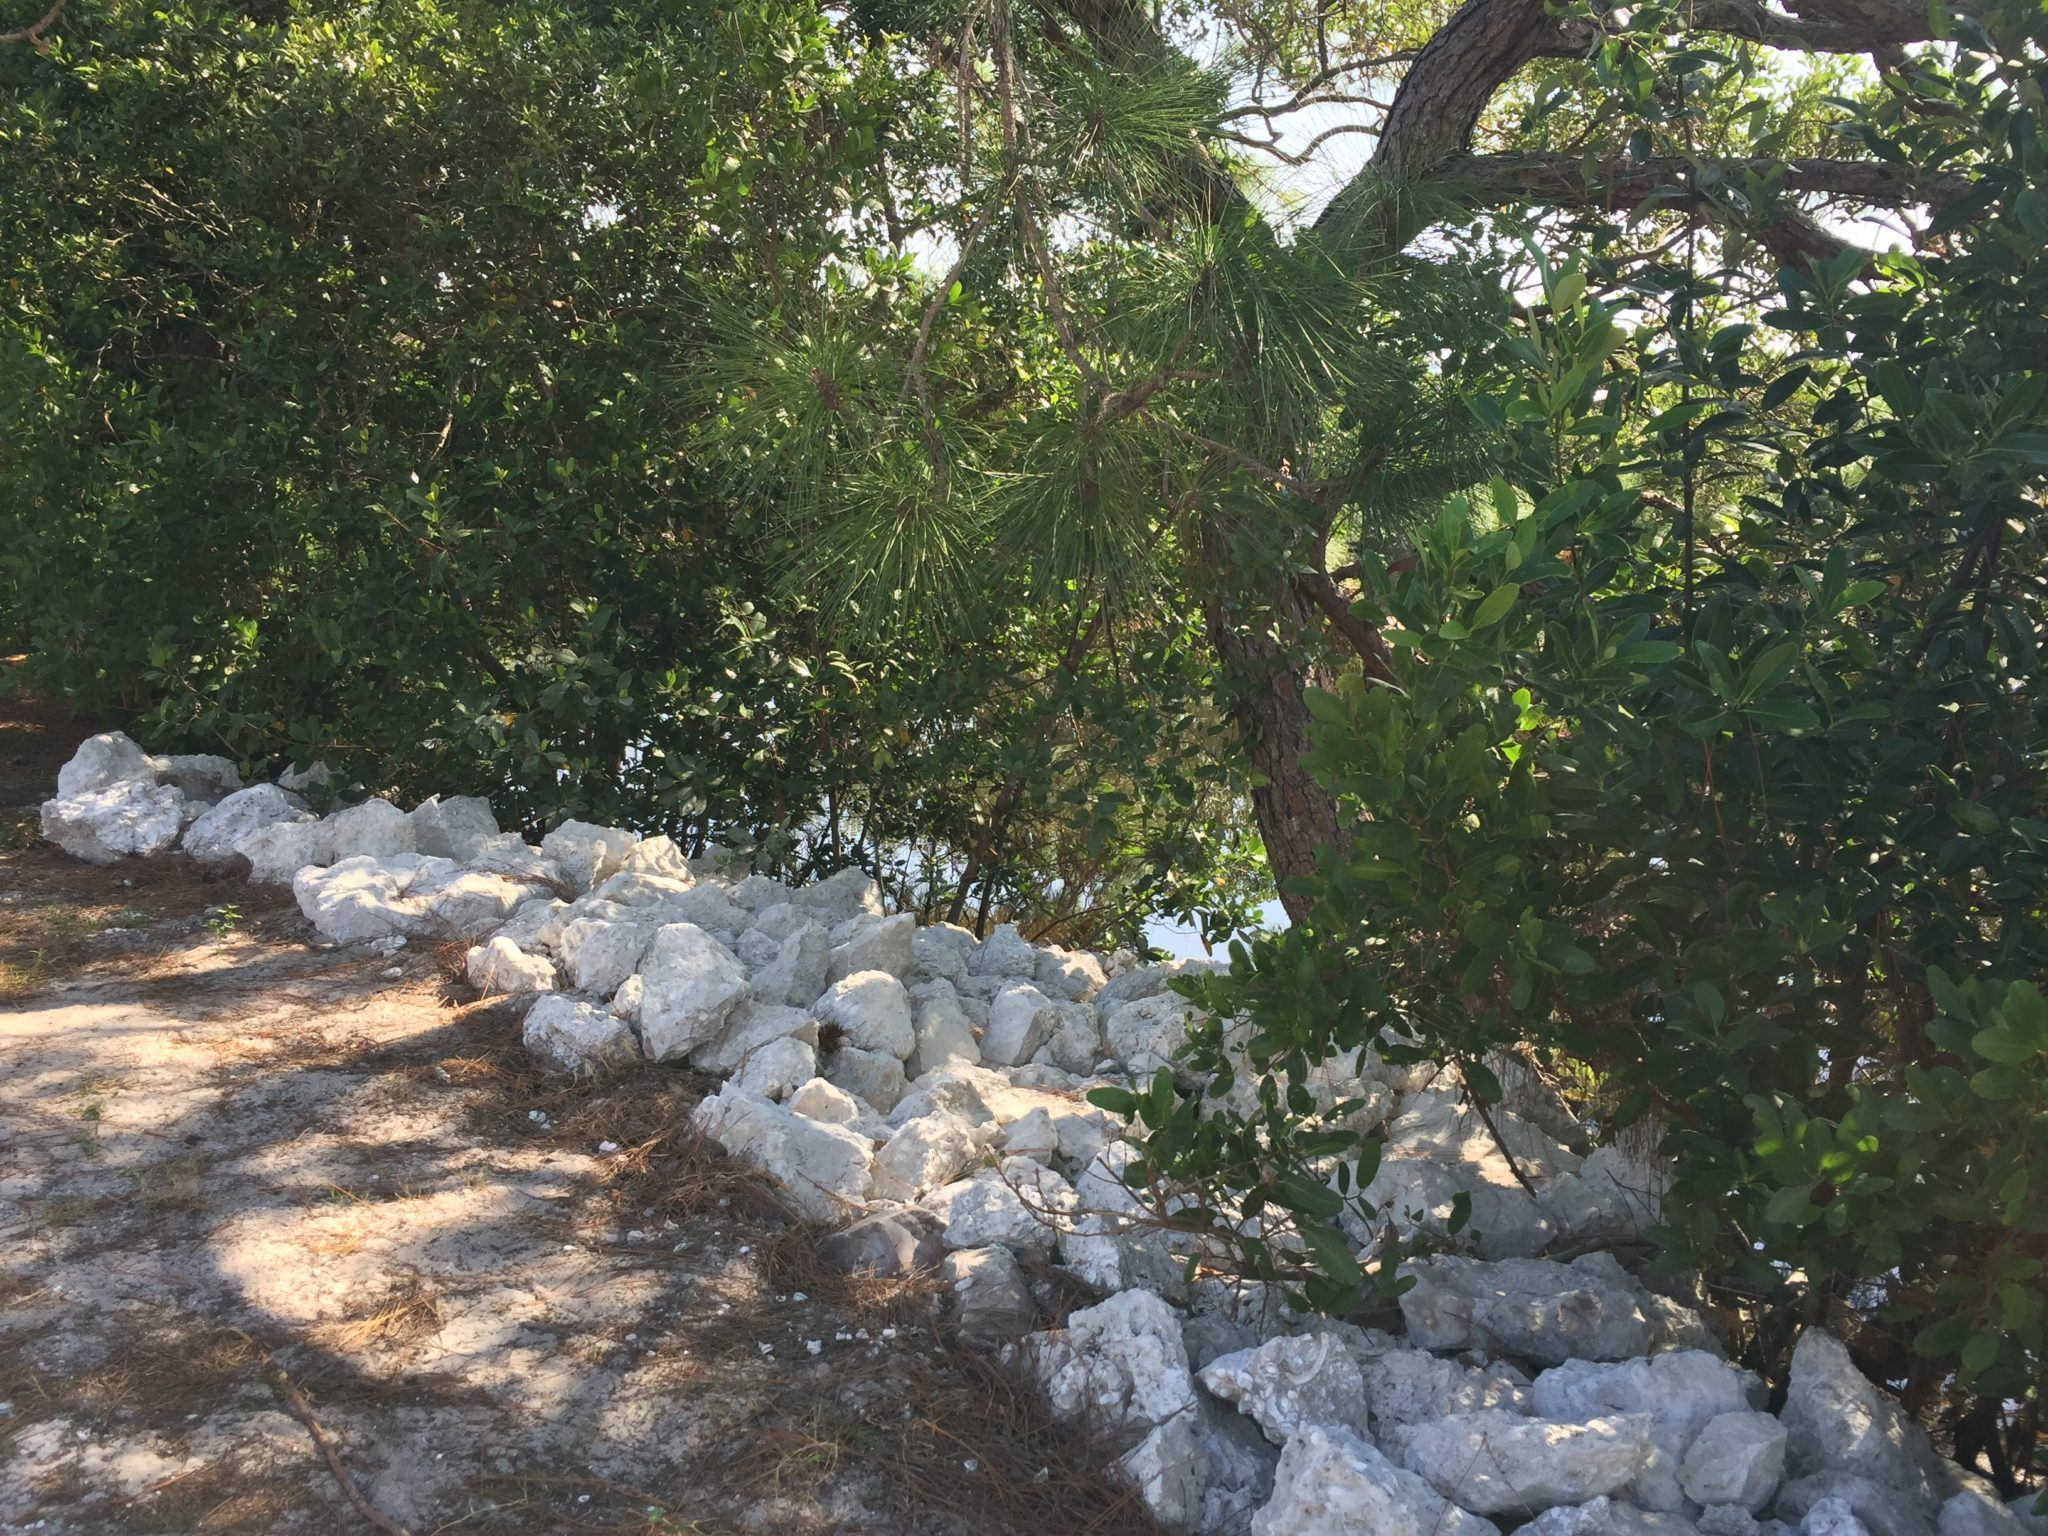 Limestone rock rip rap placed around mangrove bed for shoreline stabilization